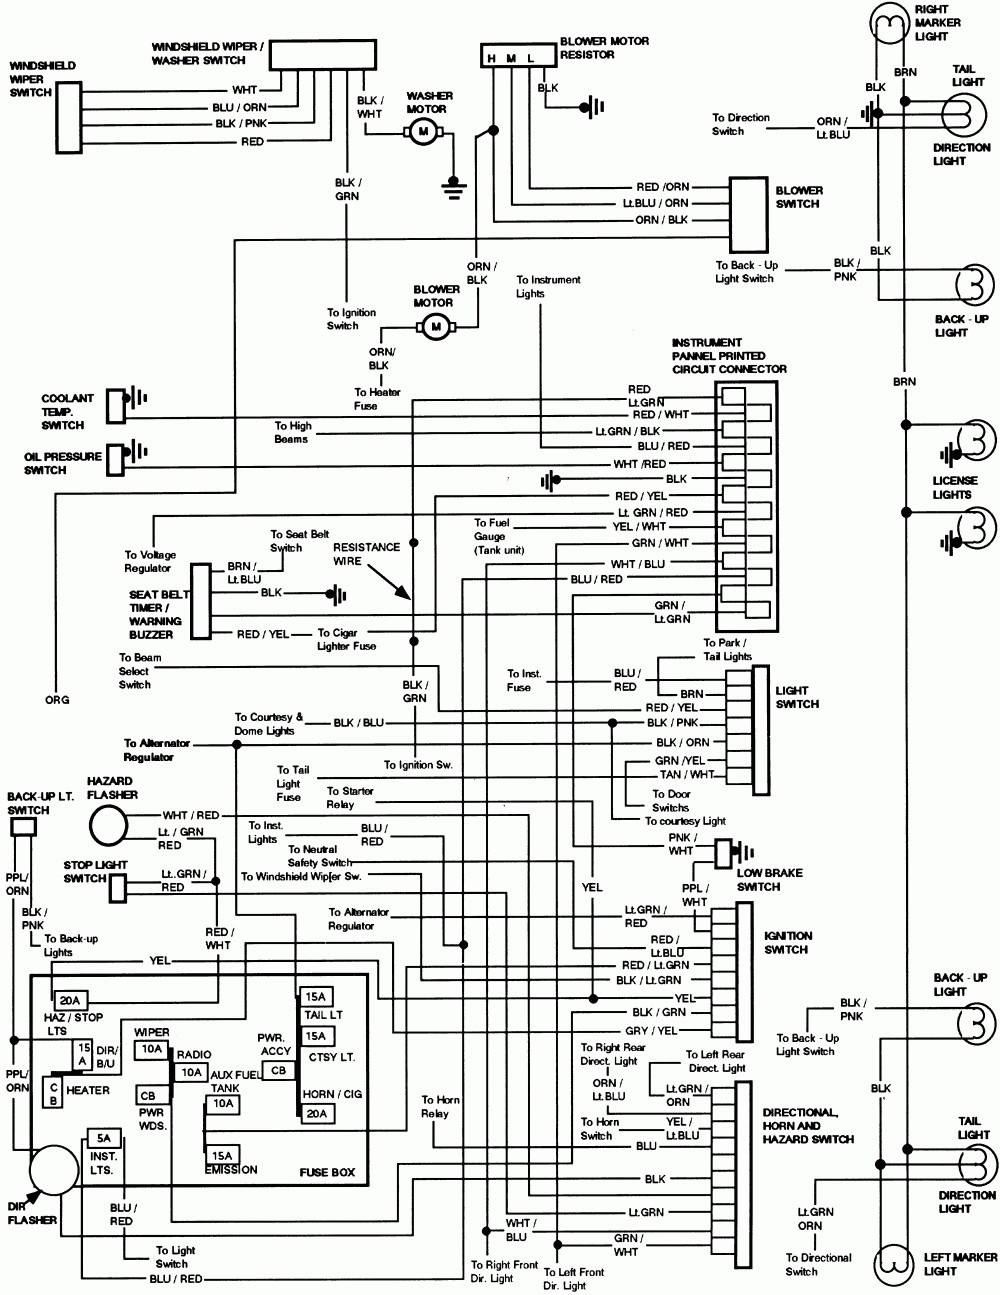 medium resolution of f150 electrical diagram wiring diagram fascinating 2000 ford f150 wiring diagram 2000 f150 wiring diagram